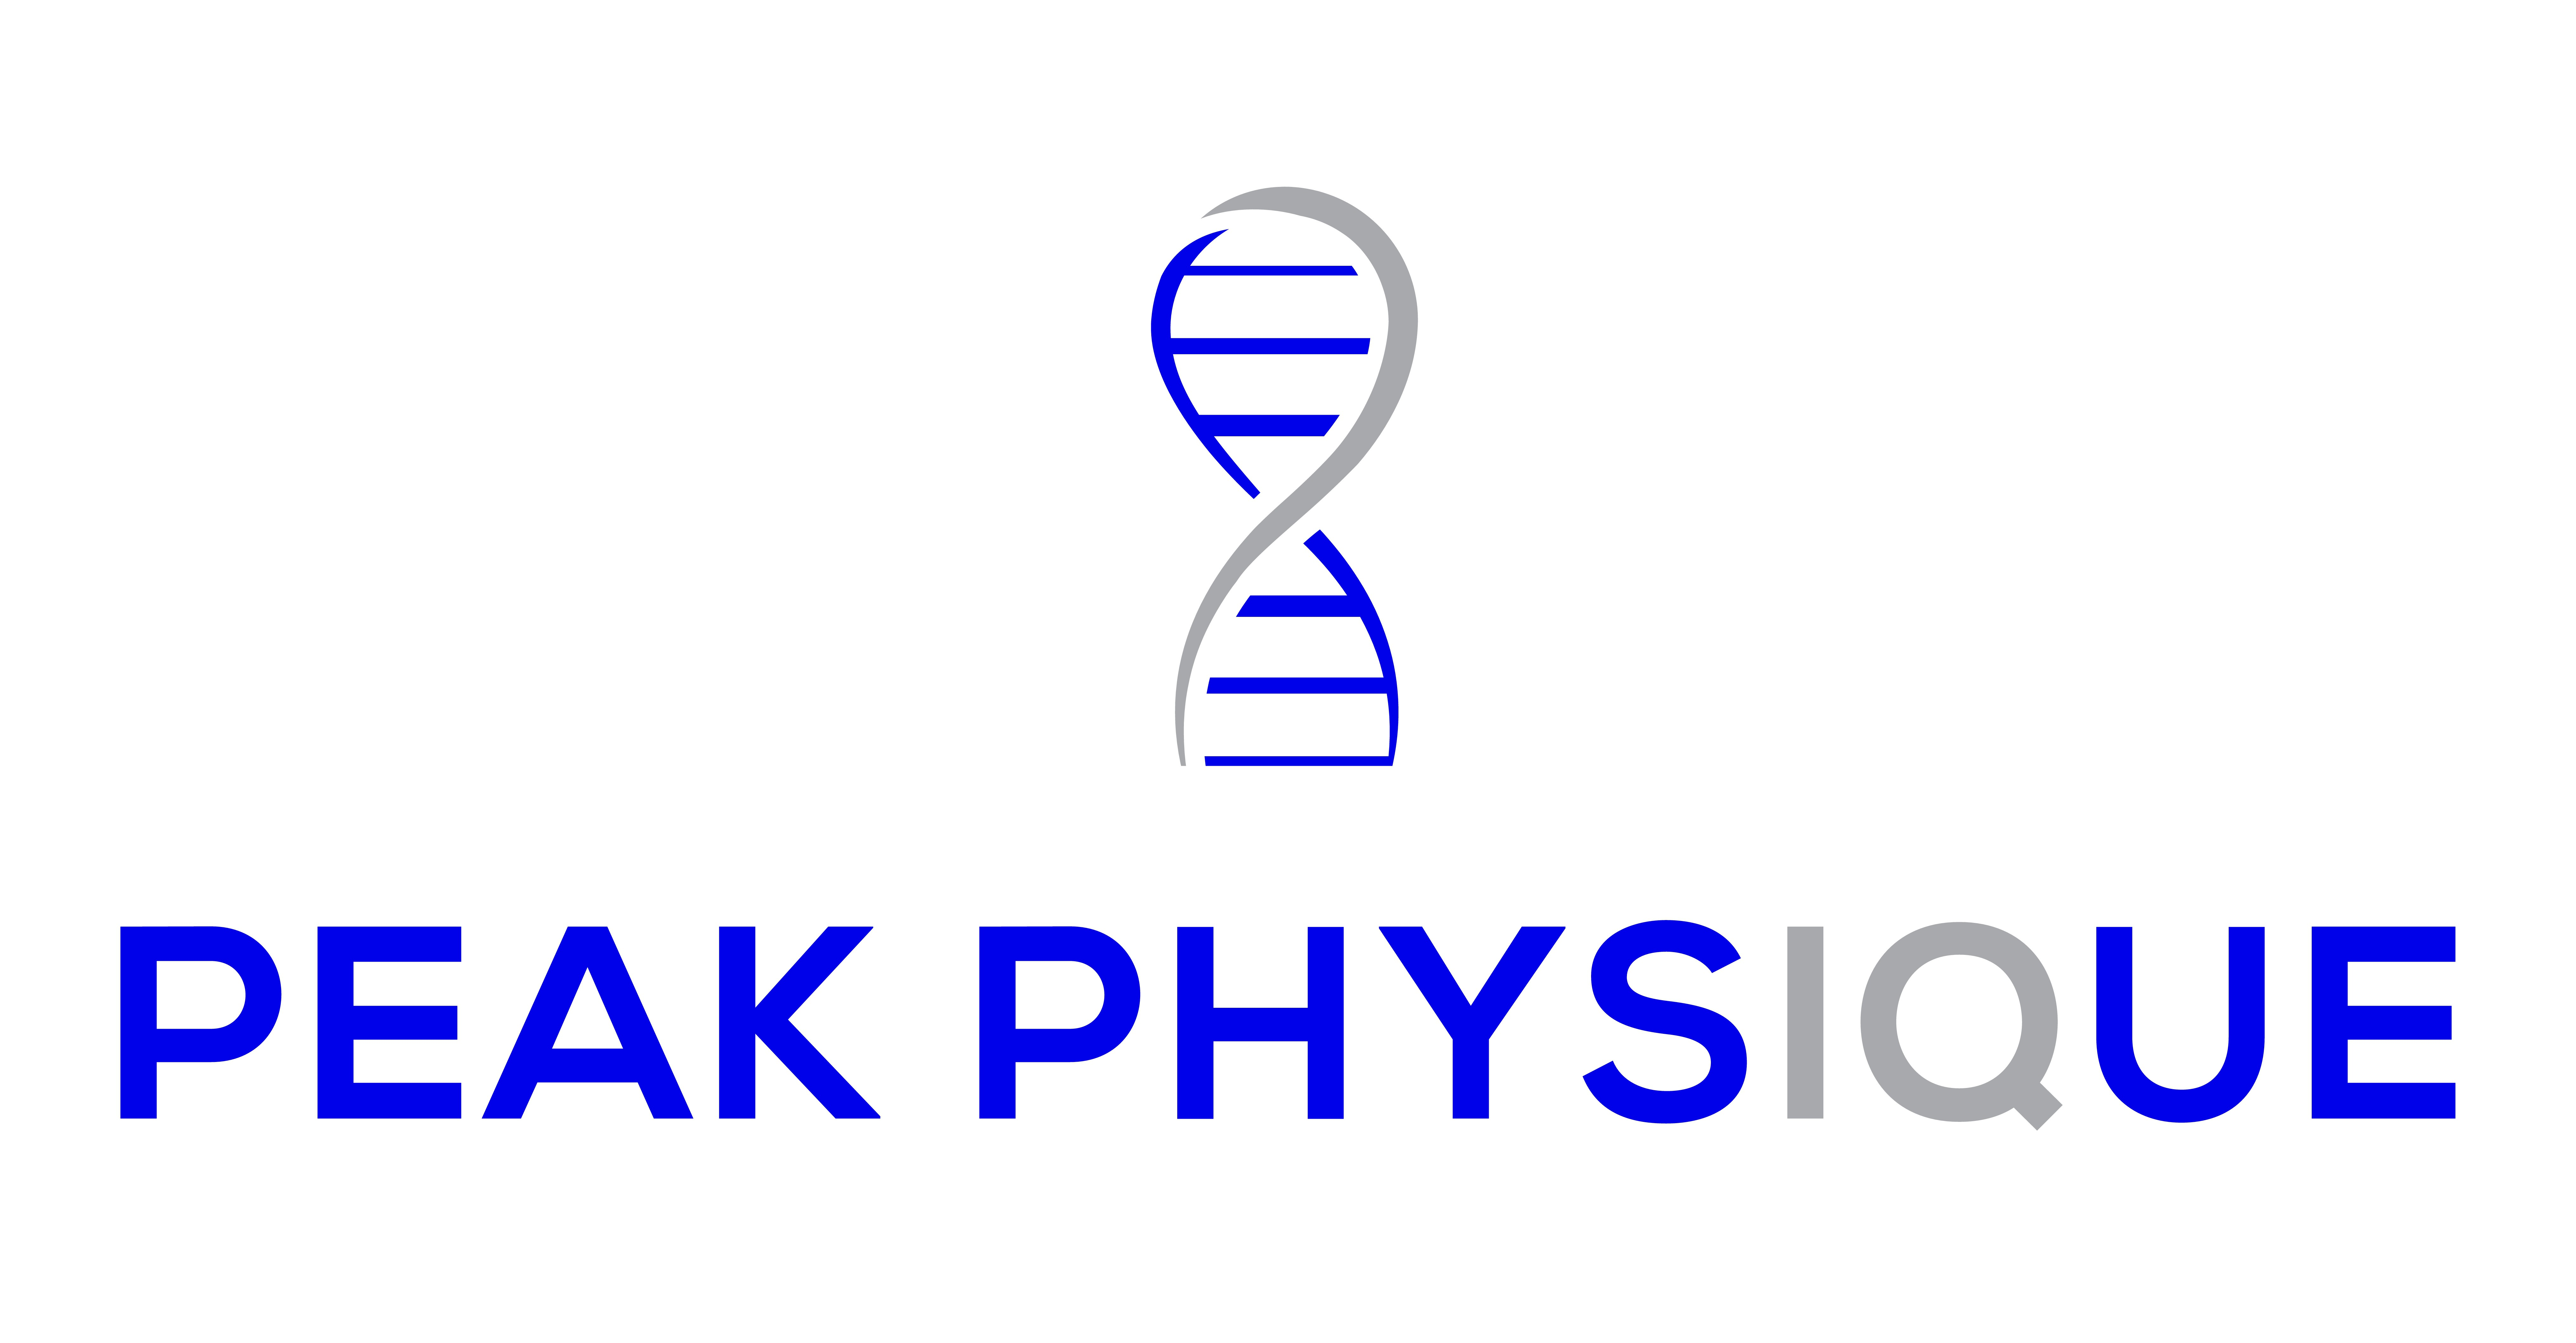 Eye catching, motivating logo for a sports performance enhancing business